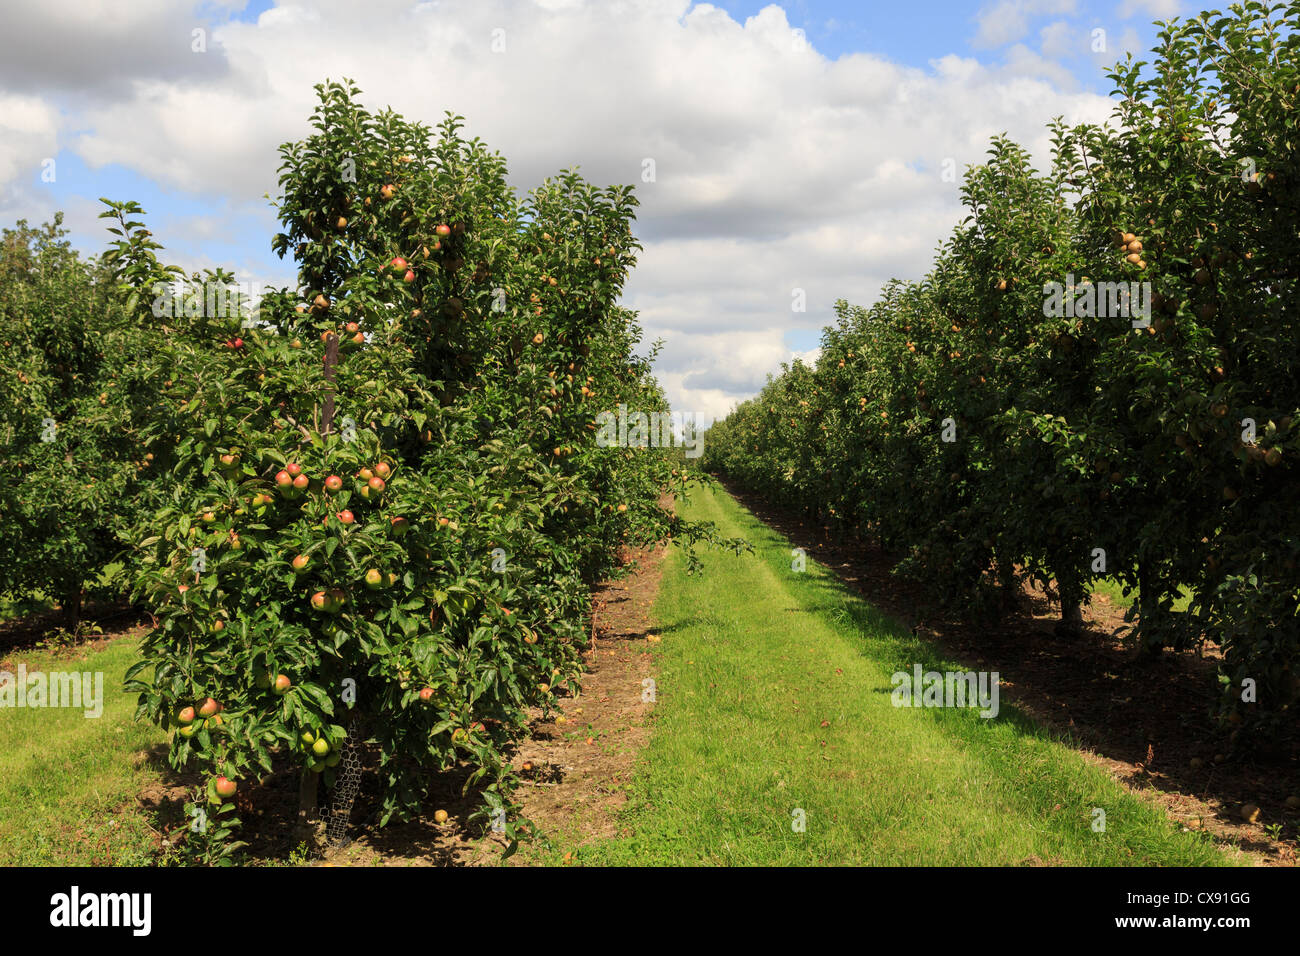 Apple orchard laden with ripe apples on the rows of trellised trees in late summer in Kent, England, UK, Britain - Stock Image